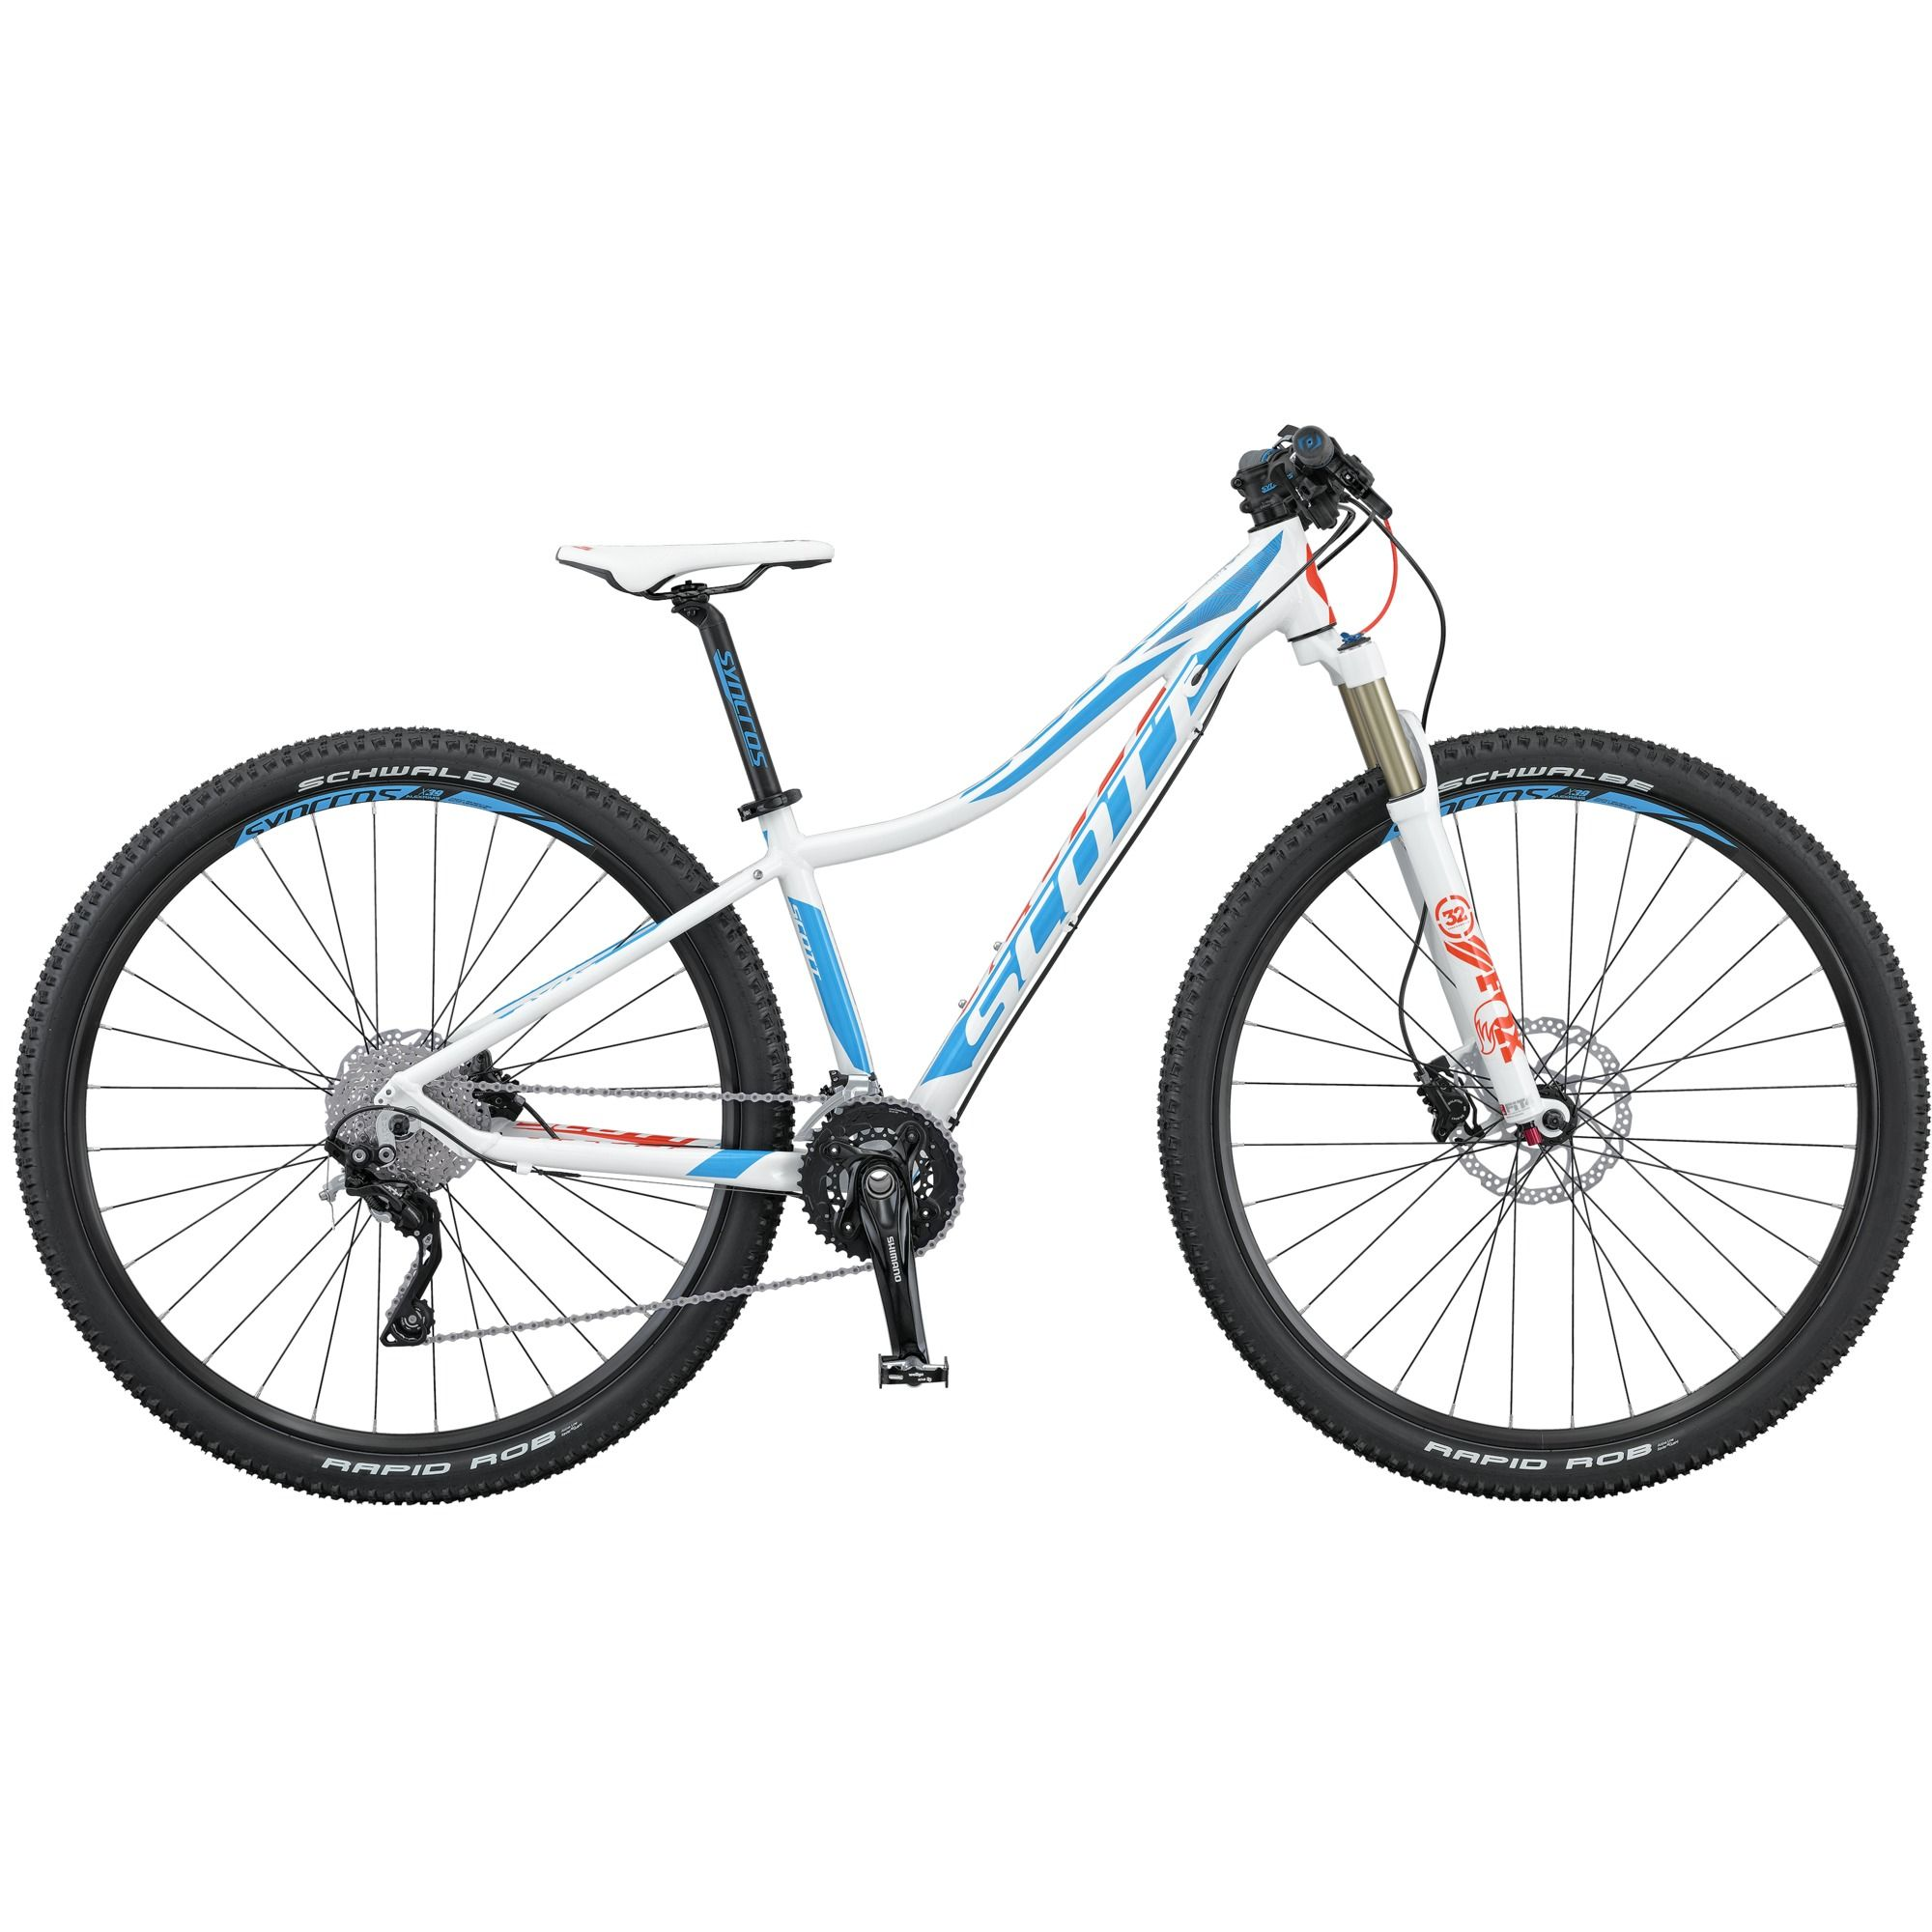 The Scott Contessa Scale 900 Features A Superlight Alloy Frame